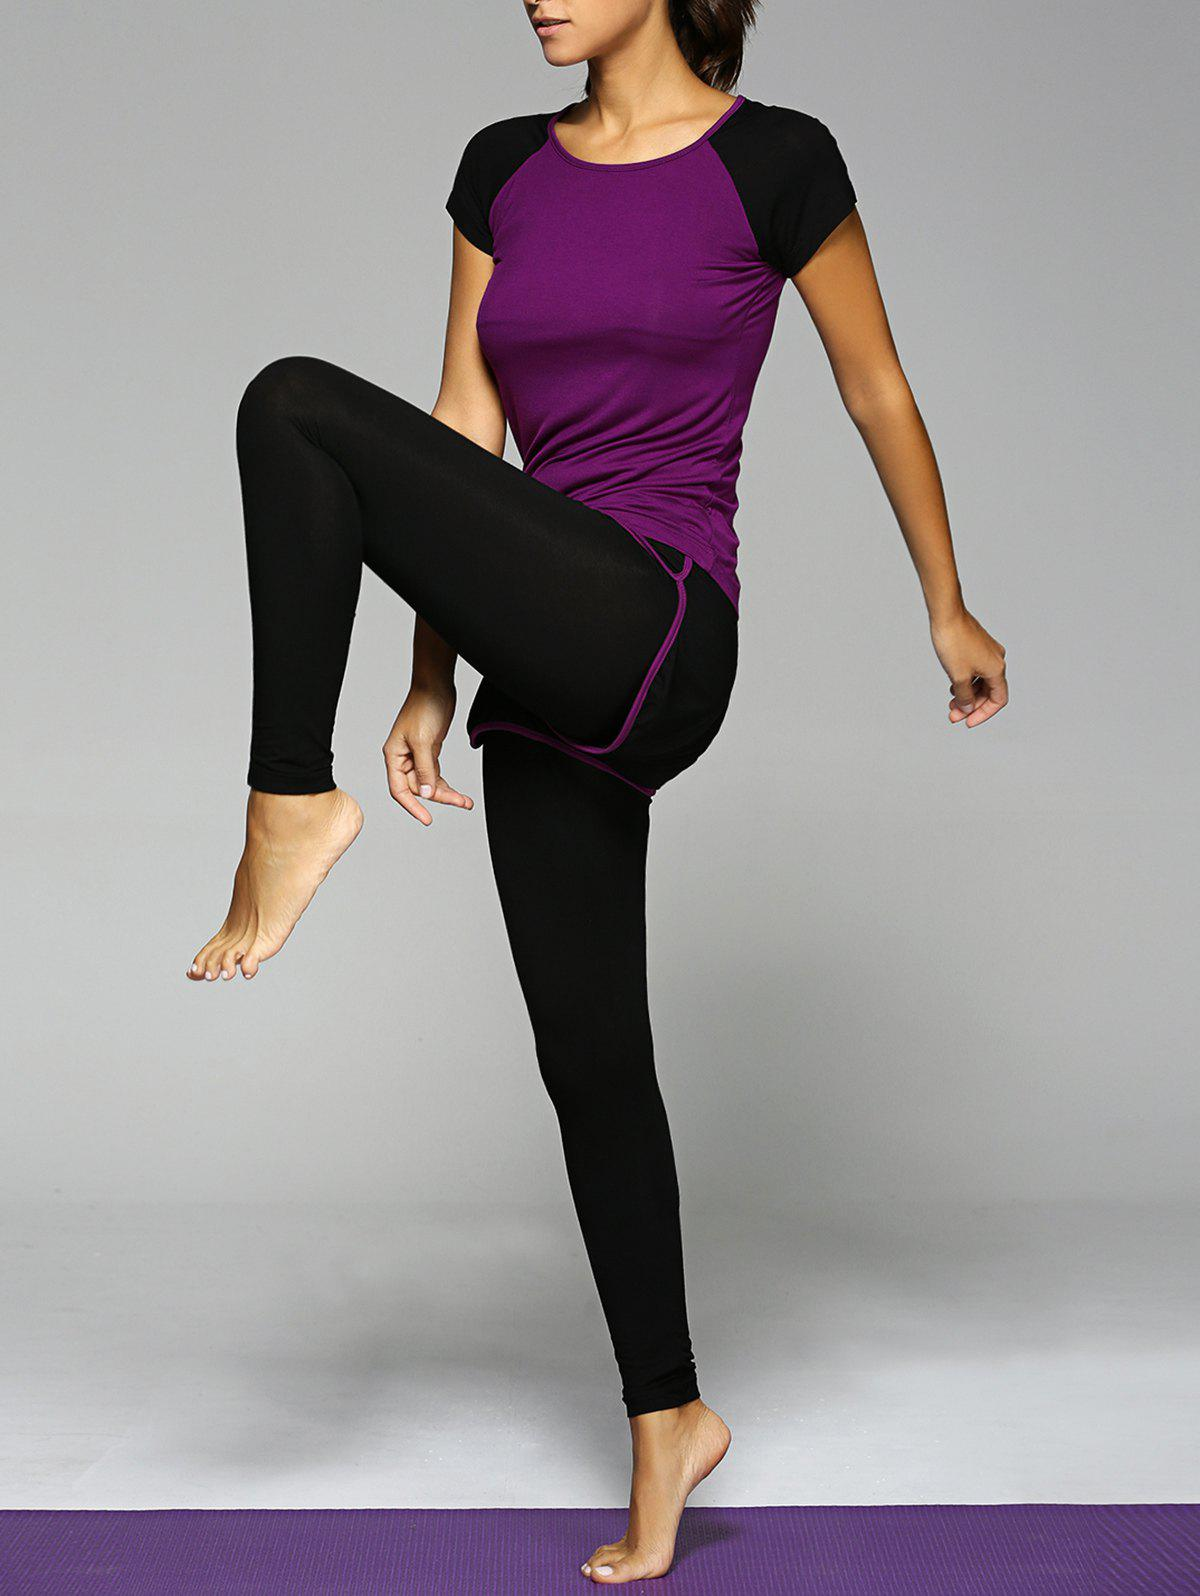 Scoop Neck Top et Bicolor Leggings Suit Pourpre  L